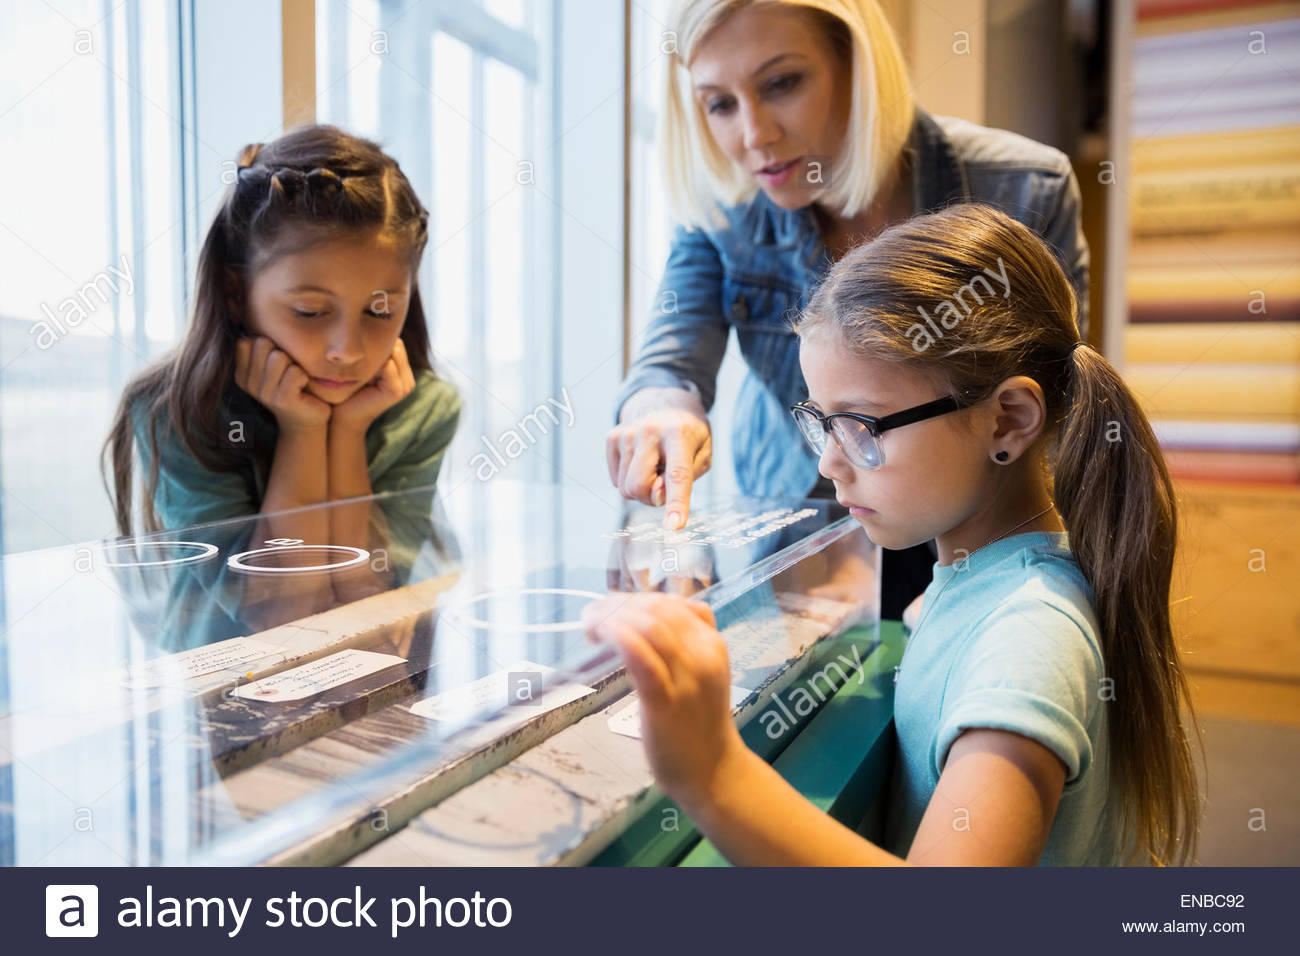 Family looking at geology display at science center - Stock Image